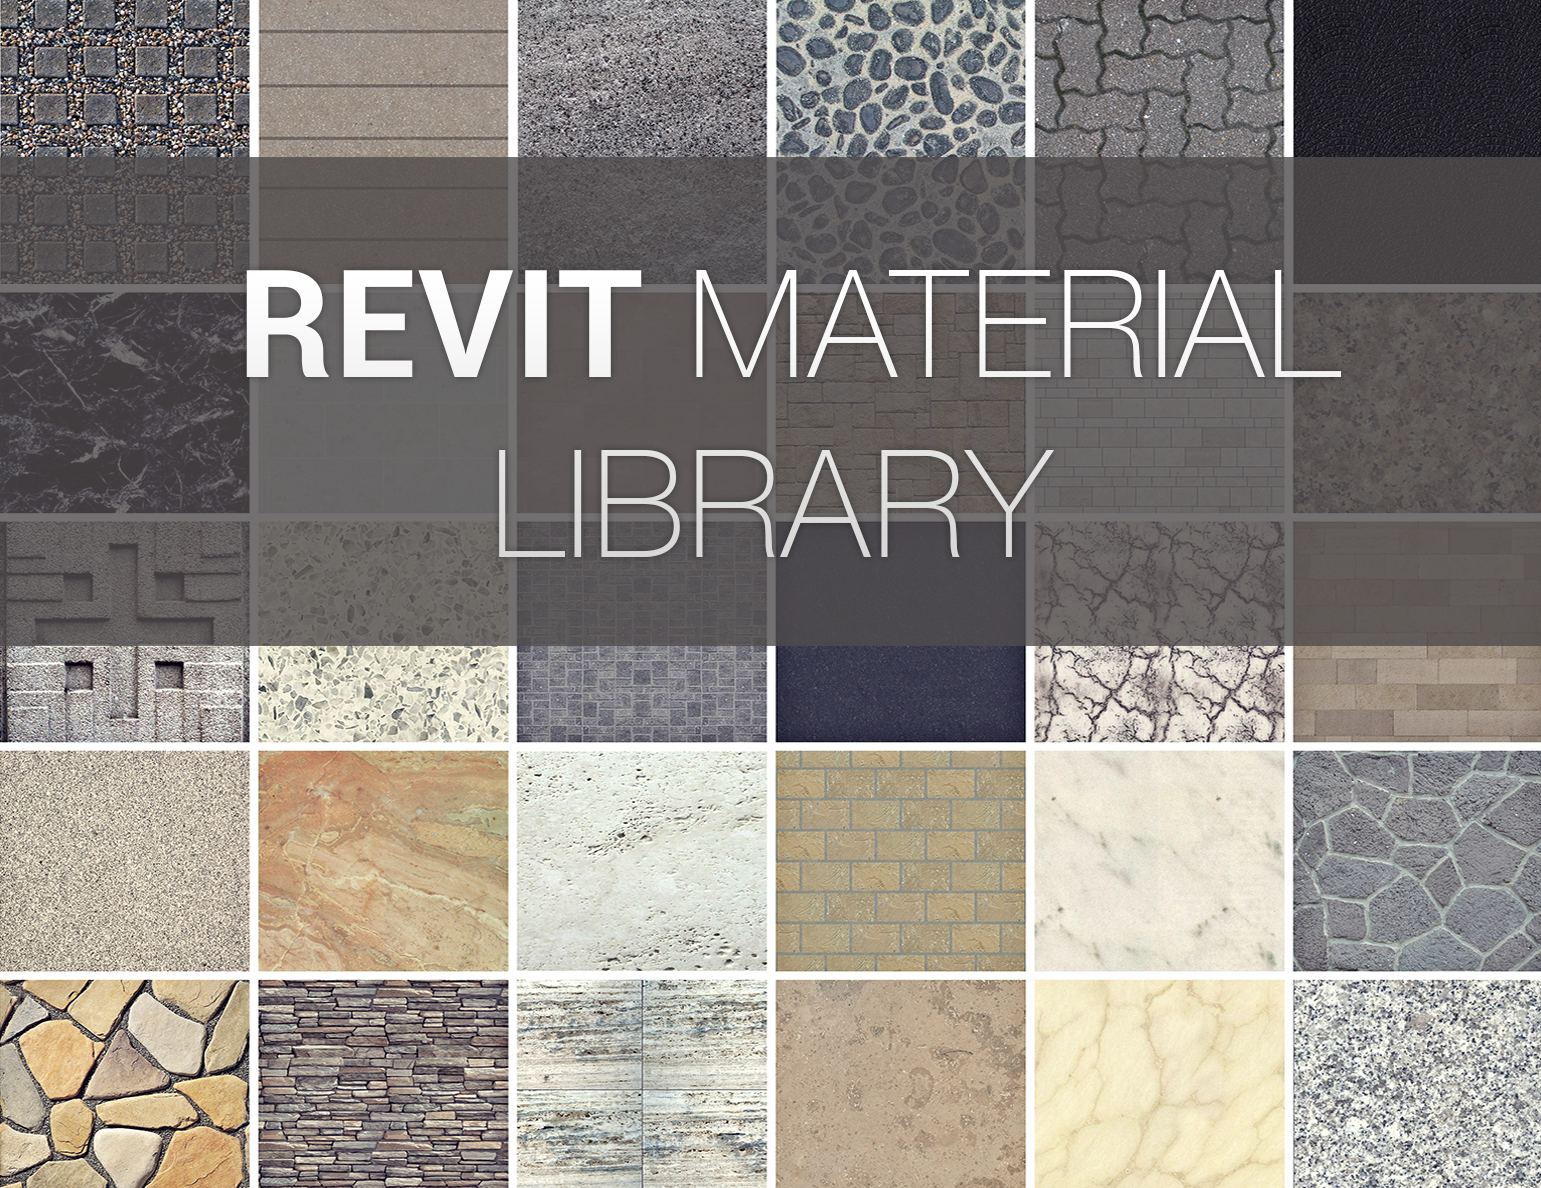 Top 5 Sites for Material Library and Revit Research — MISO BIM